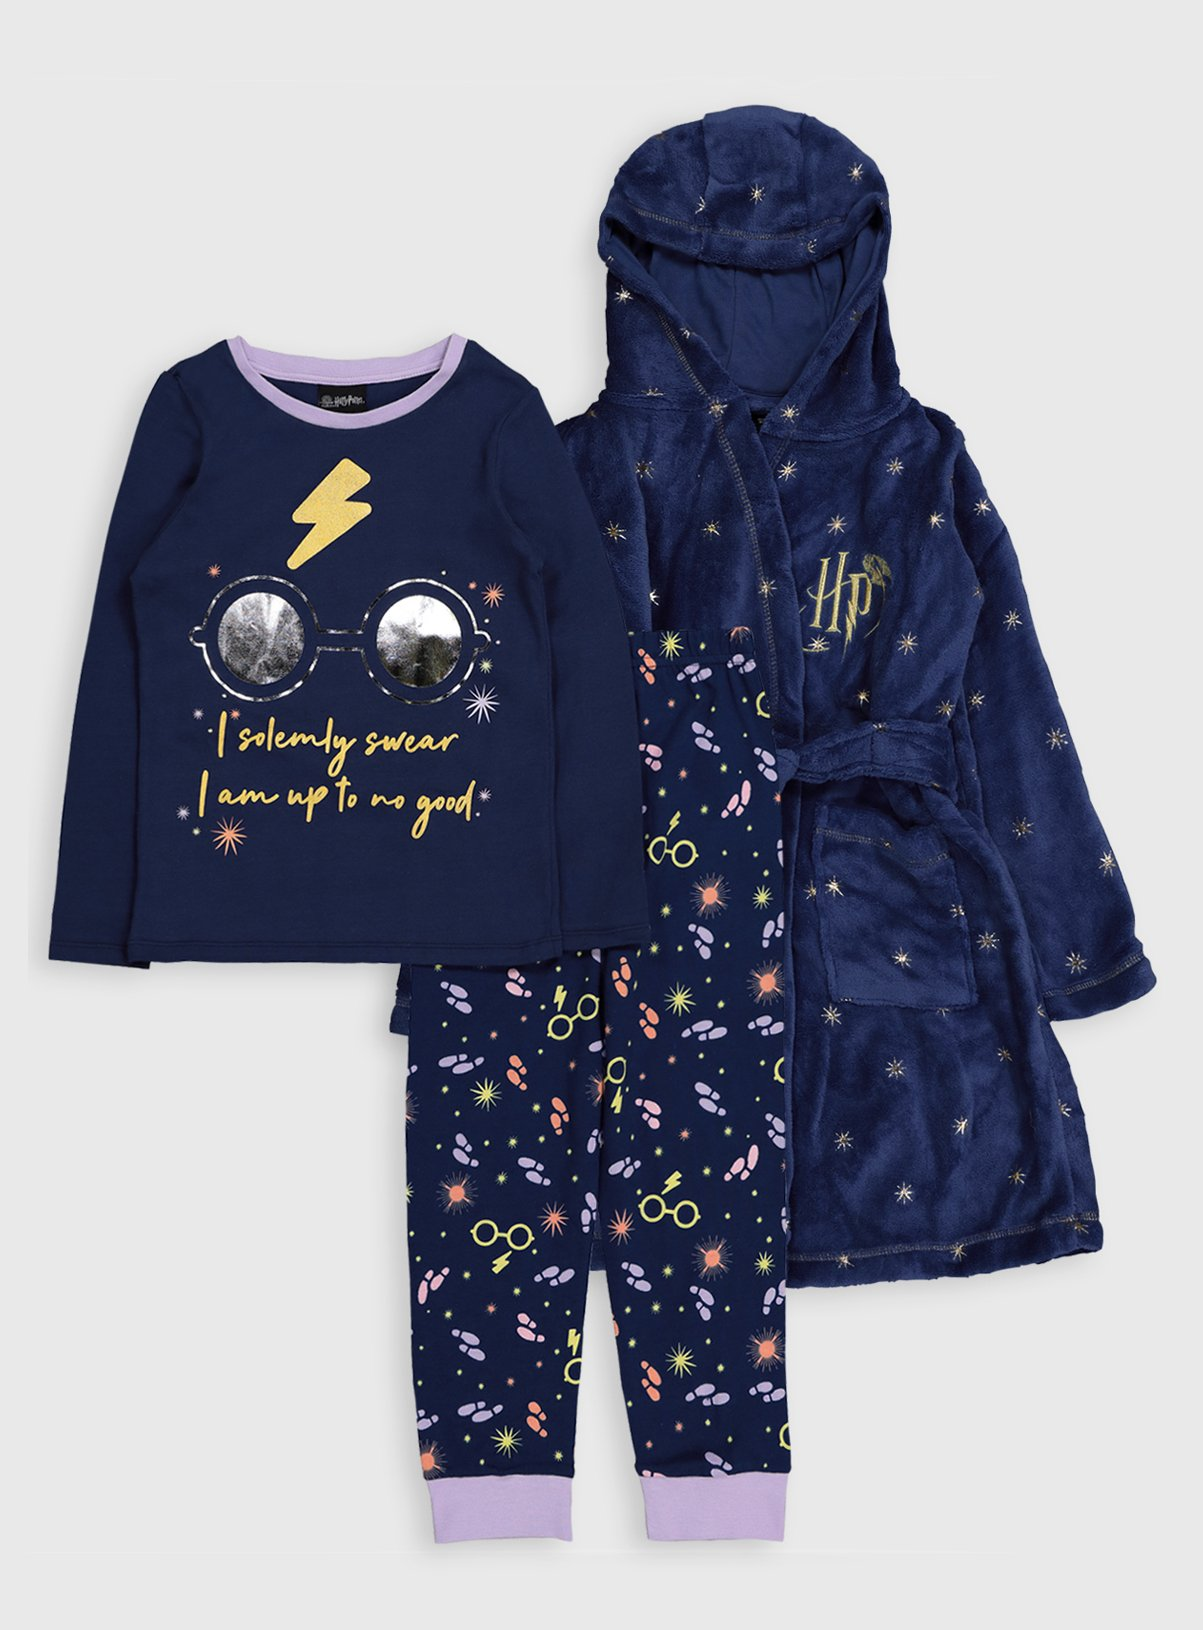 Harry Potter Pyjamas & Dressing Gown - 8-9 years